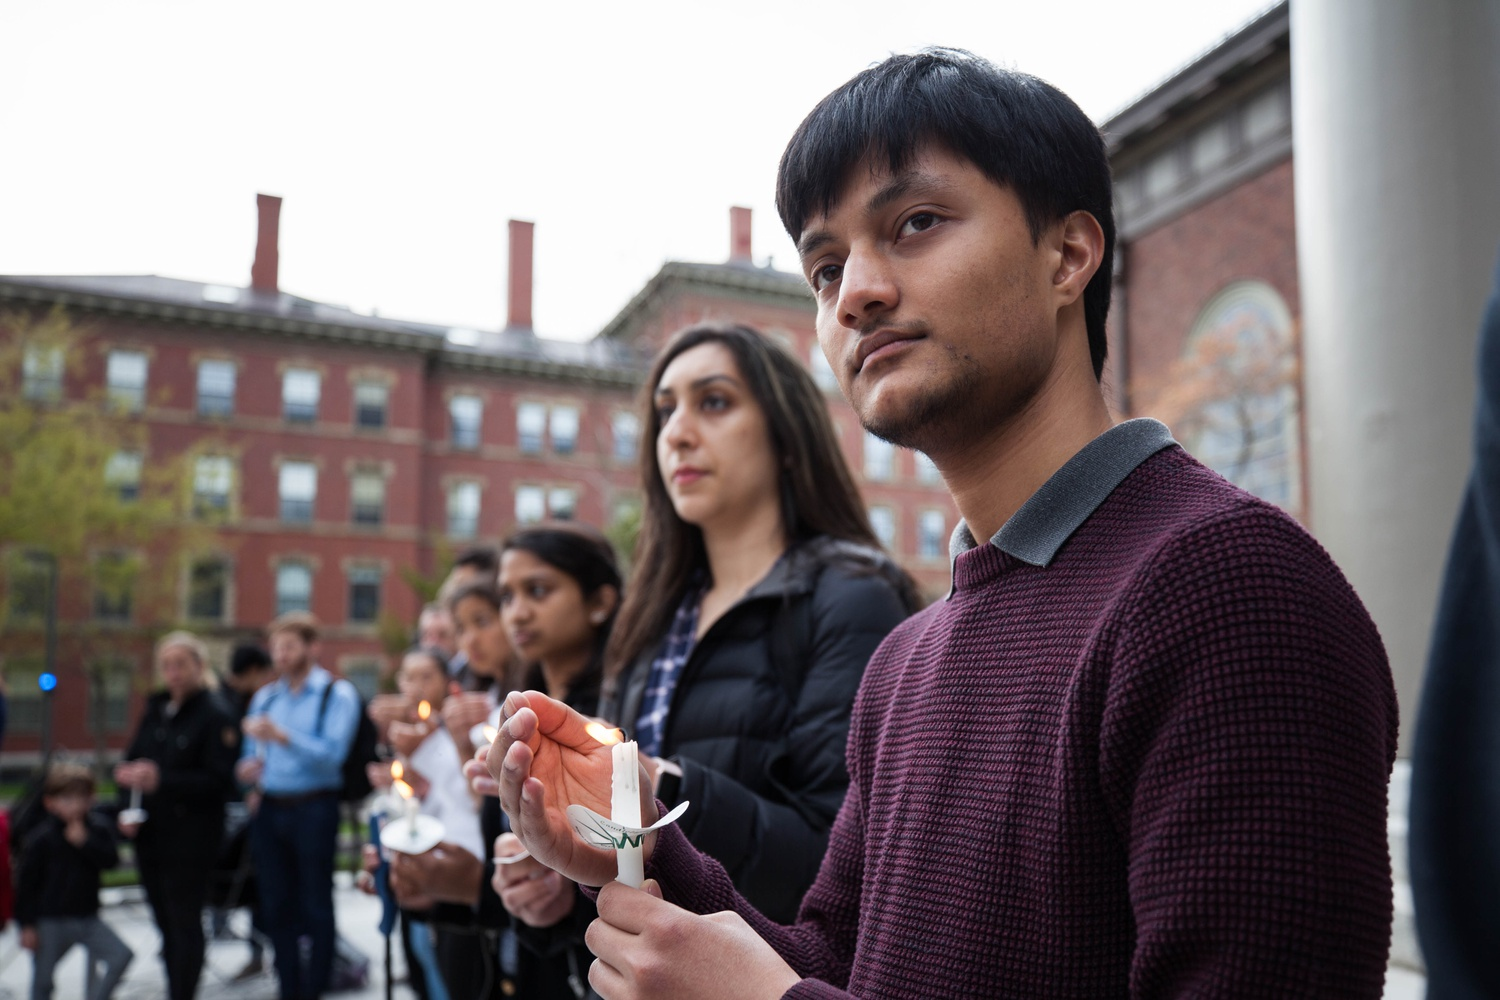 Satish Wasti '21 takes part in a Prayer Vigil on the steps of Memorial Church hosted by several student groups in light of the recent terrorist attacks in Sri Lanka.